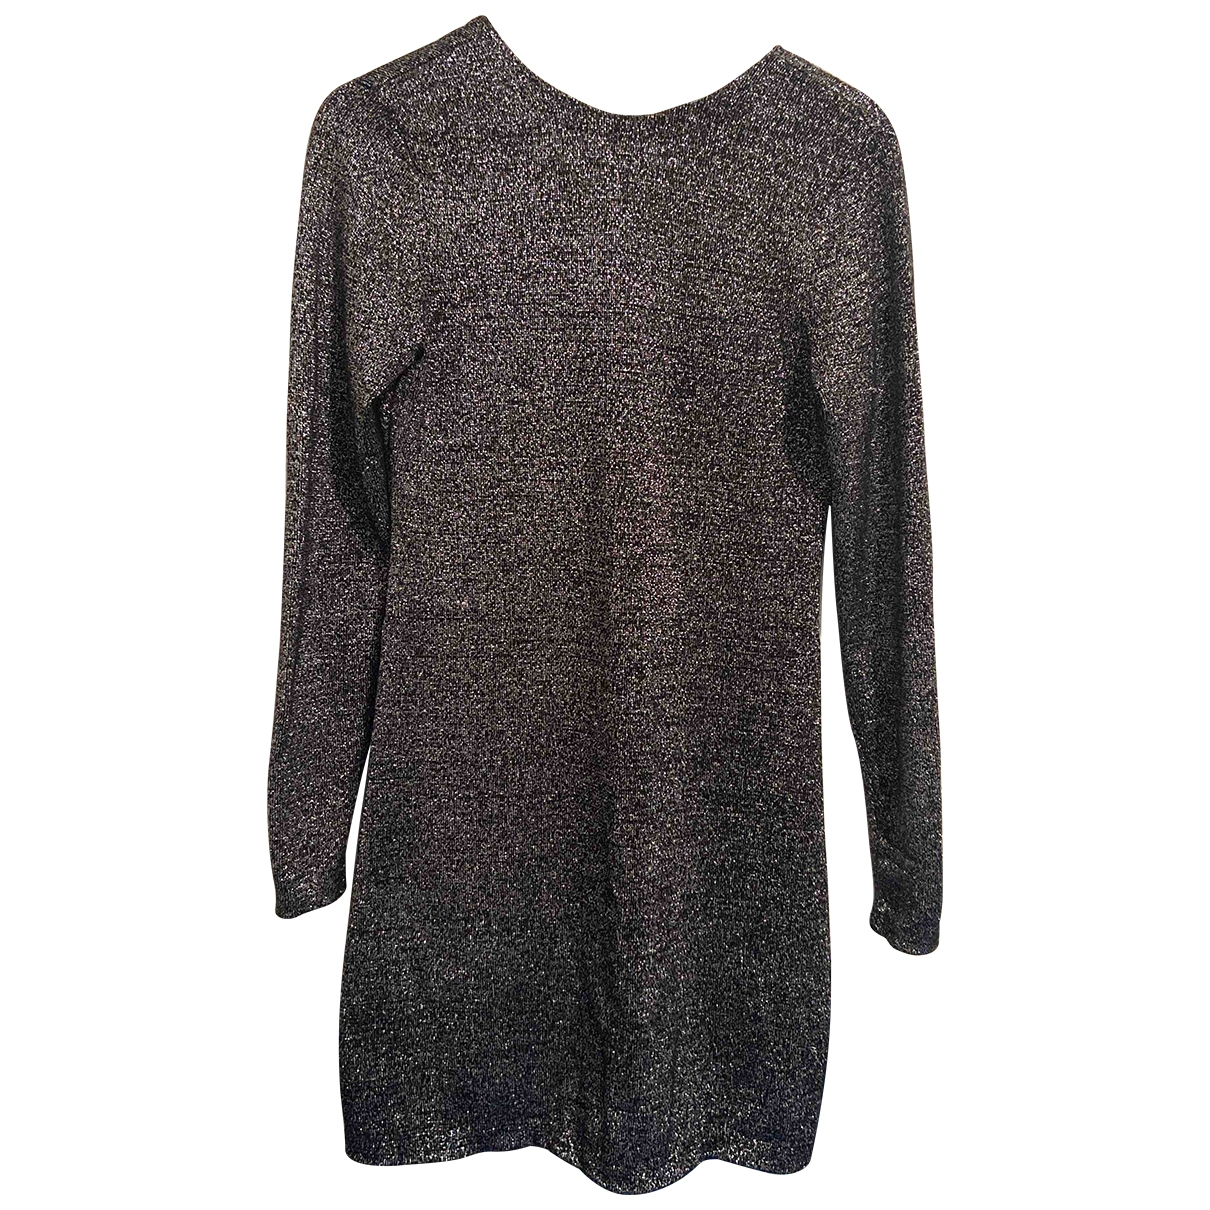 & Stories \N Silver Wool dress for Women S International